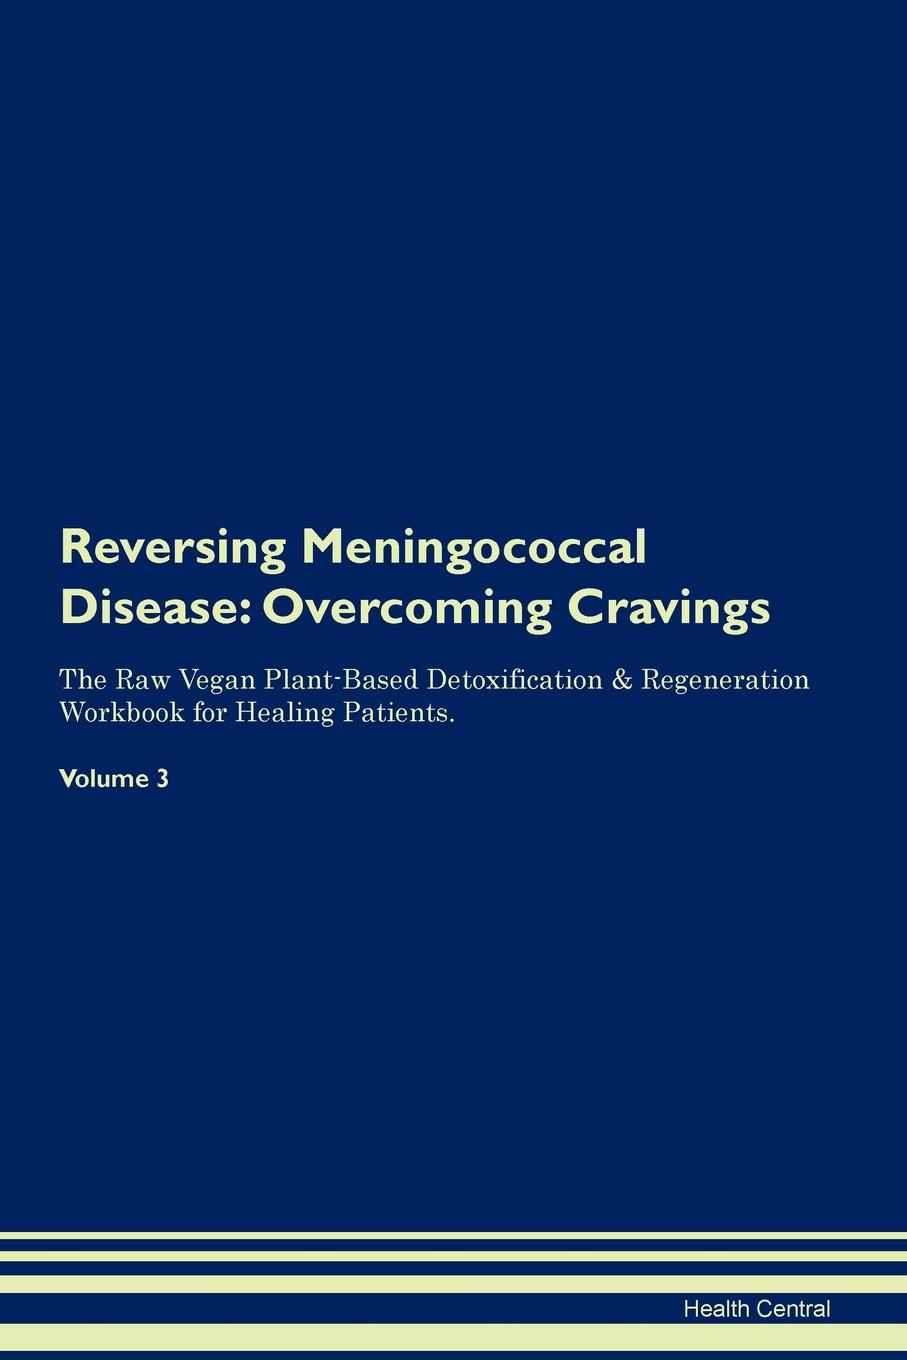 Фото - Health Central Reversing Meningococcal Disease. Overcoming Cravings The Raw Vegan Plant-Based Detoxification & Regeneration Workbook for Healing Patients. Volume 3 health central reversing extramammary paget s disease overcoming cravings the raw vegan plant based detoxification regeneration workbook for healing patients volume 3